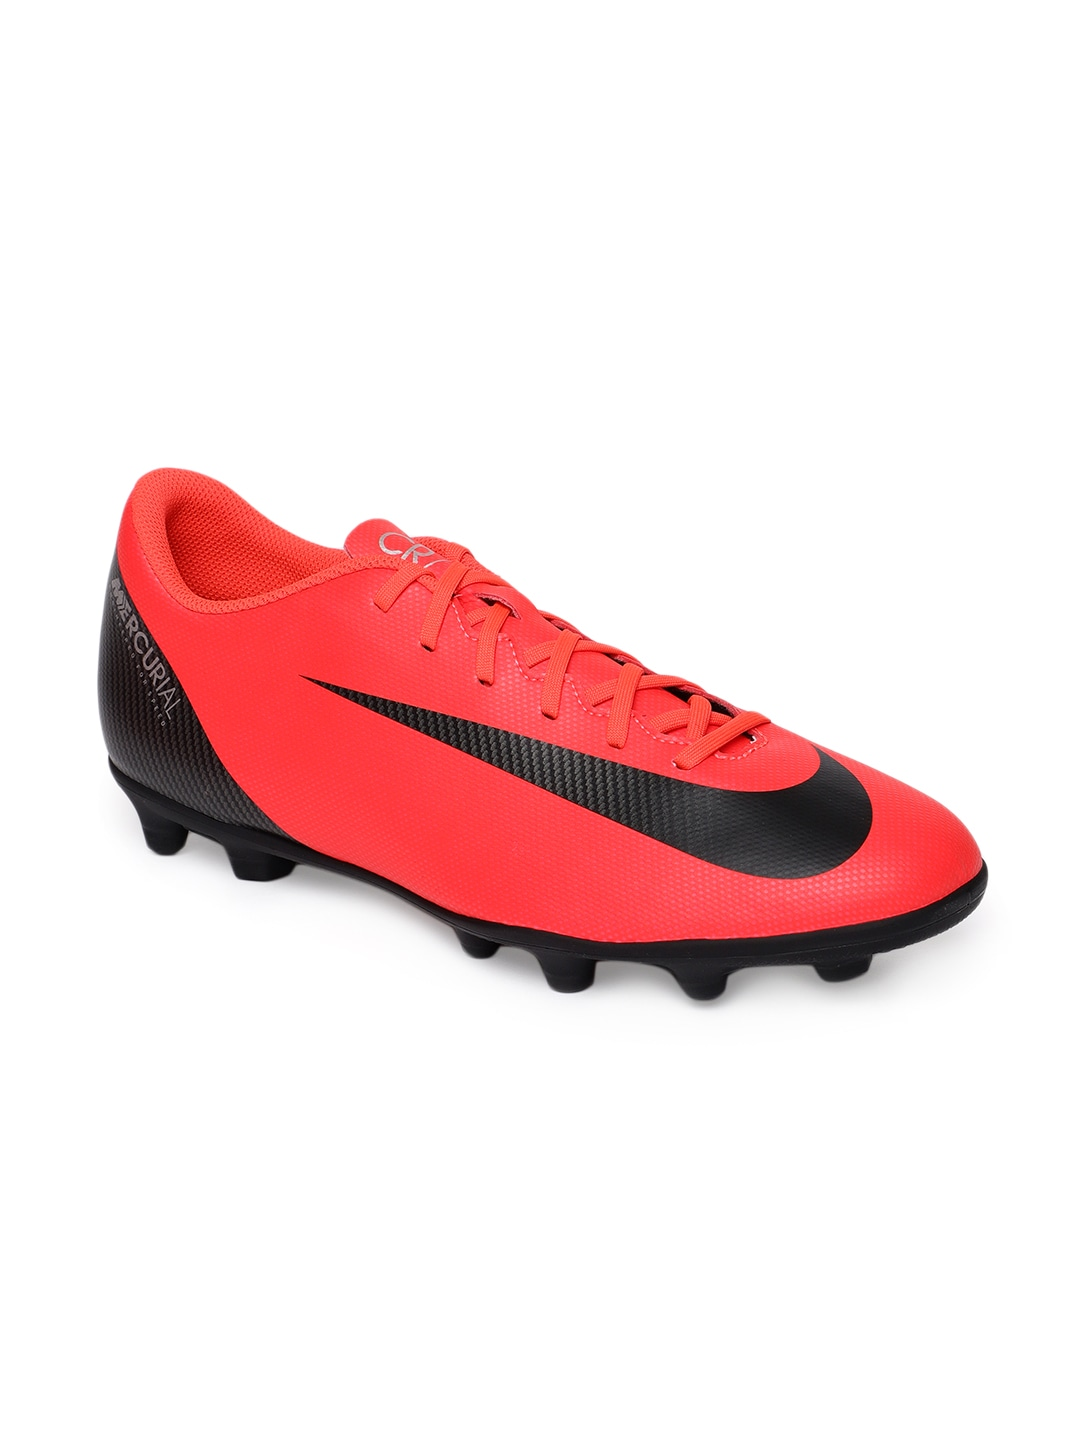 Nike Football Shoes - Buy Nike Football Shoes Online At Myntra 41eac5f95f09